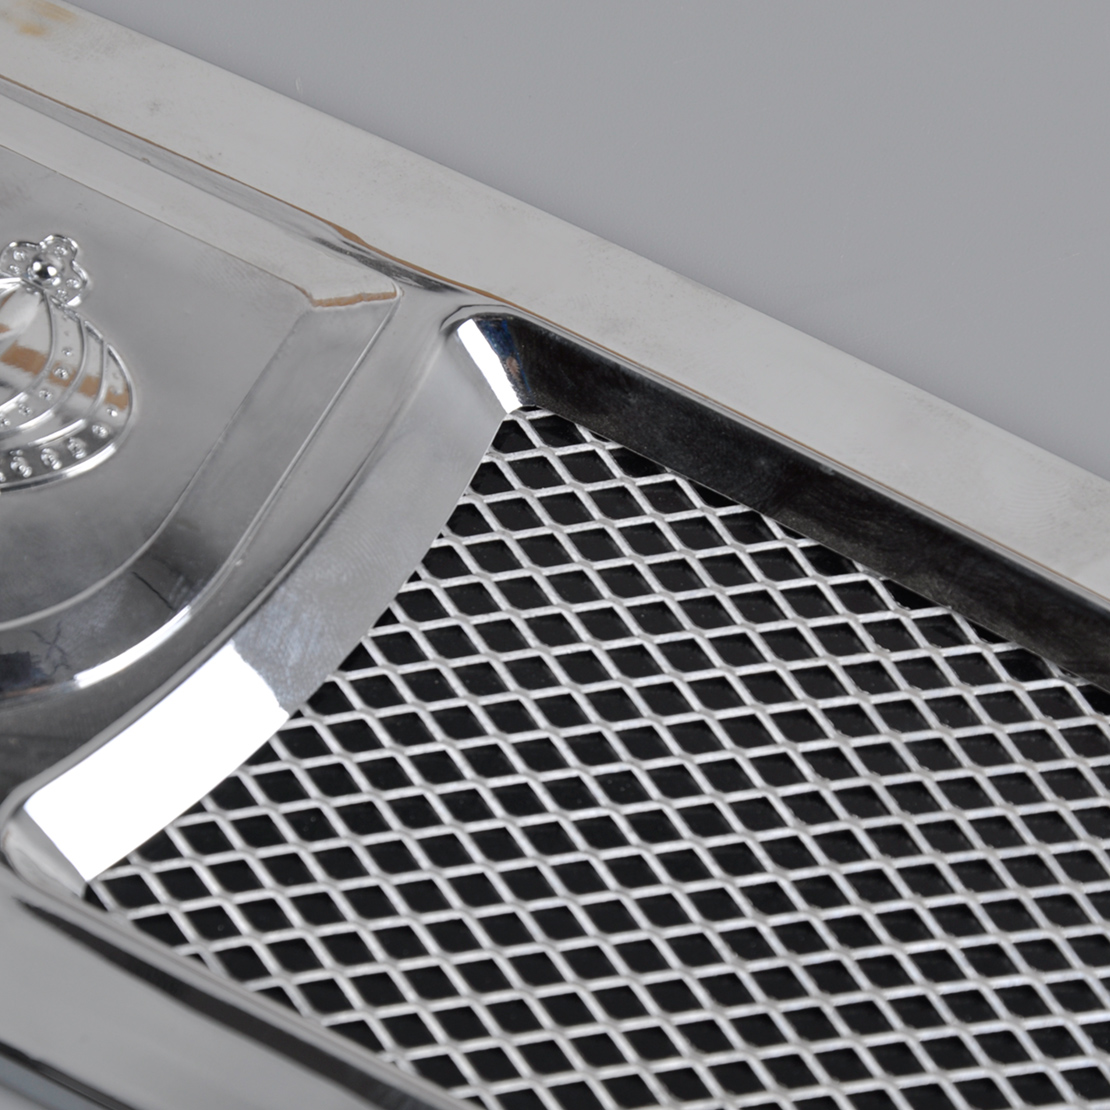 #6D5E52 Car Side Air Vent Fender Cover Hole Intake Duct Flow  Brand New 921 Air Duct Vents Covers images with 1110x1110 px on helpvideos.info - Air Conditioners, Air Coolers and more